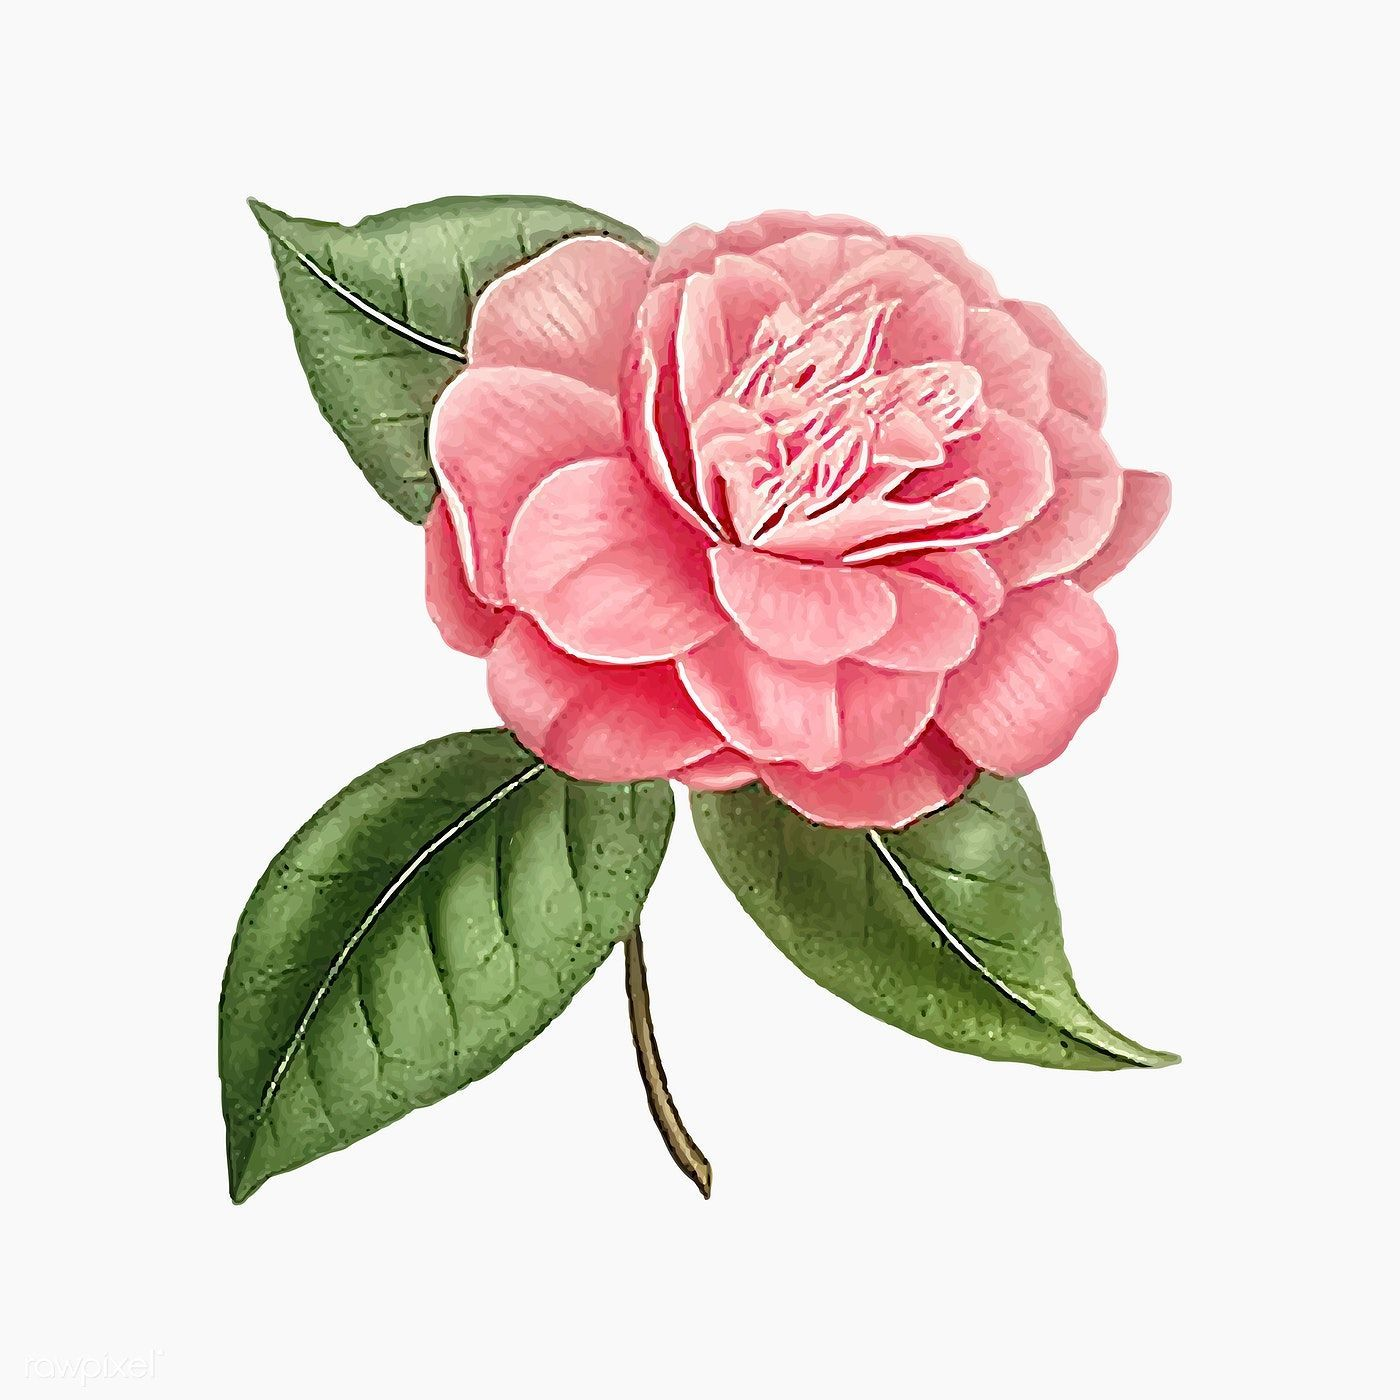 Download Premium Vector Of Pink Camellia Rose Flower Vector 2090127 Camellia Download Flower In 2020 Flower Illustration Watercolor Flowers Paintings Camellia Flower